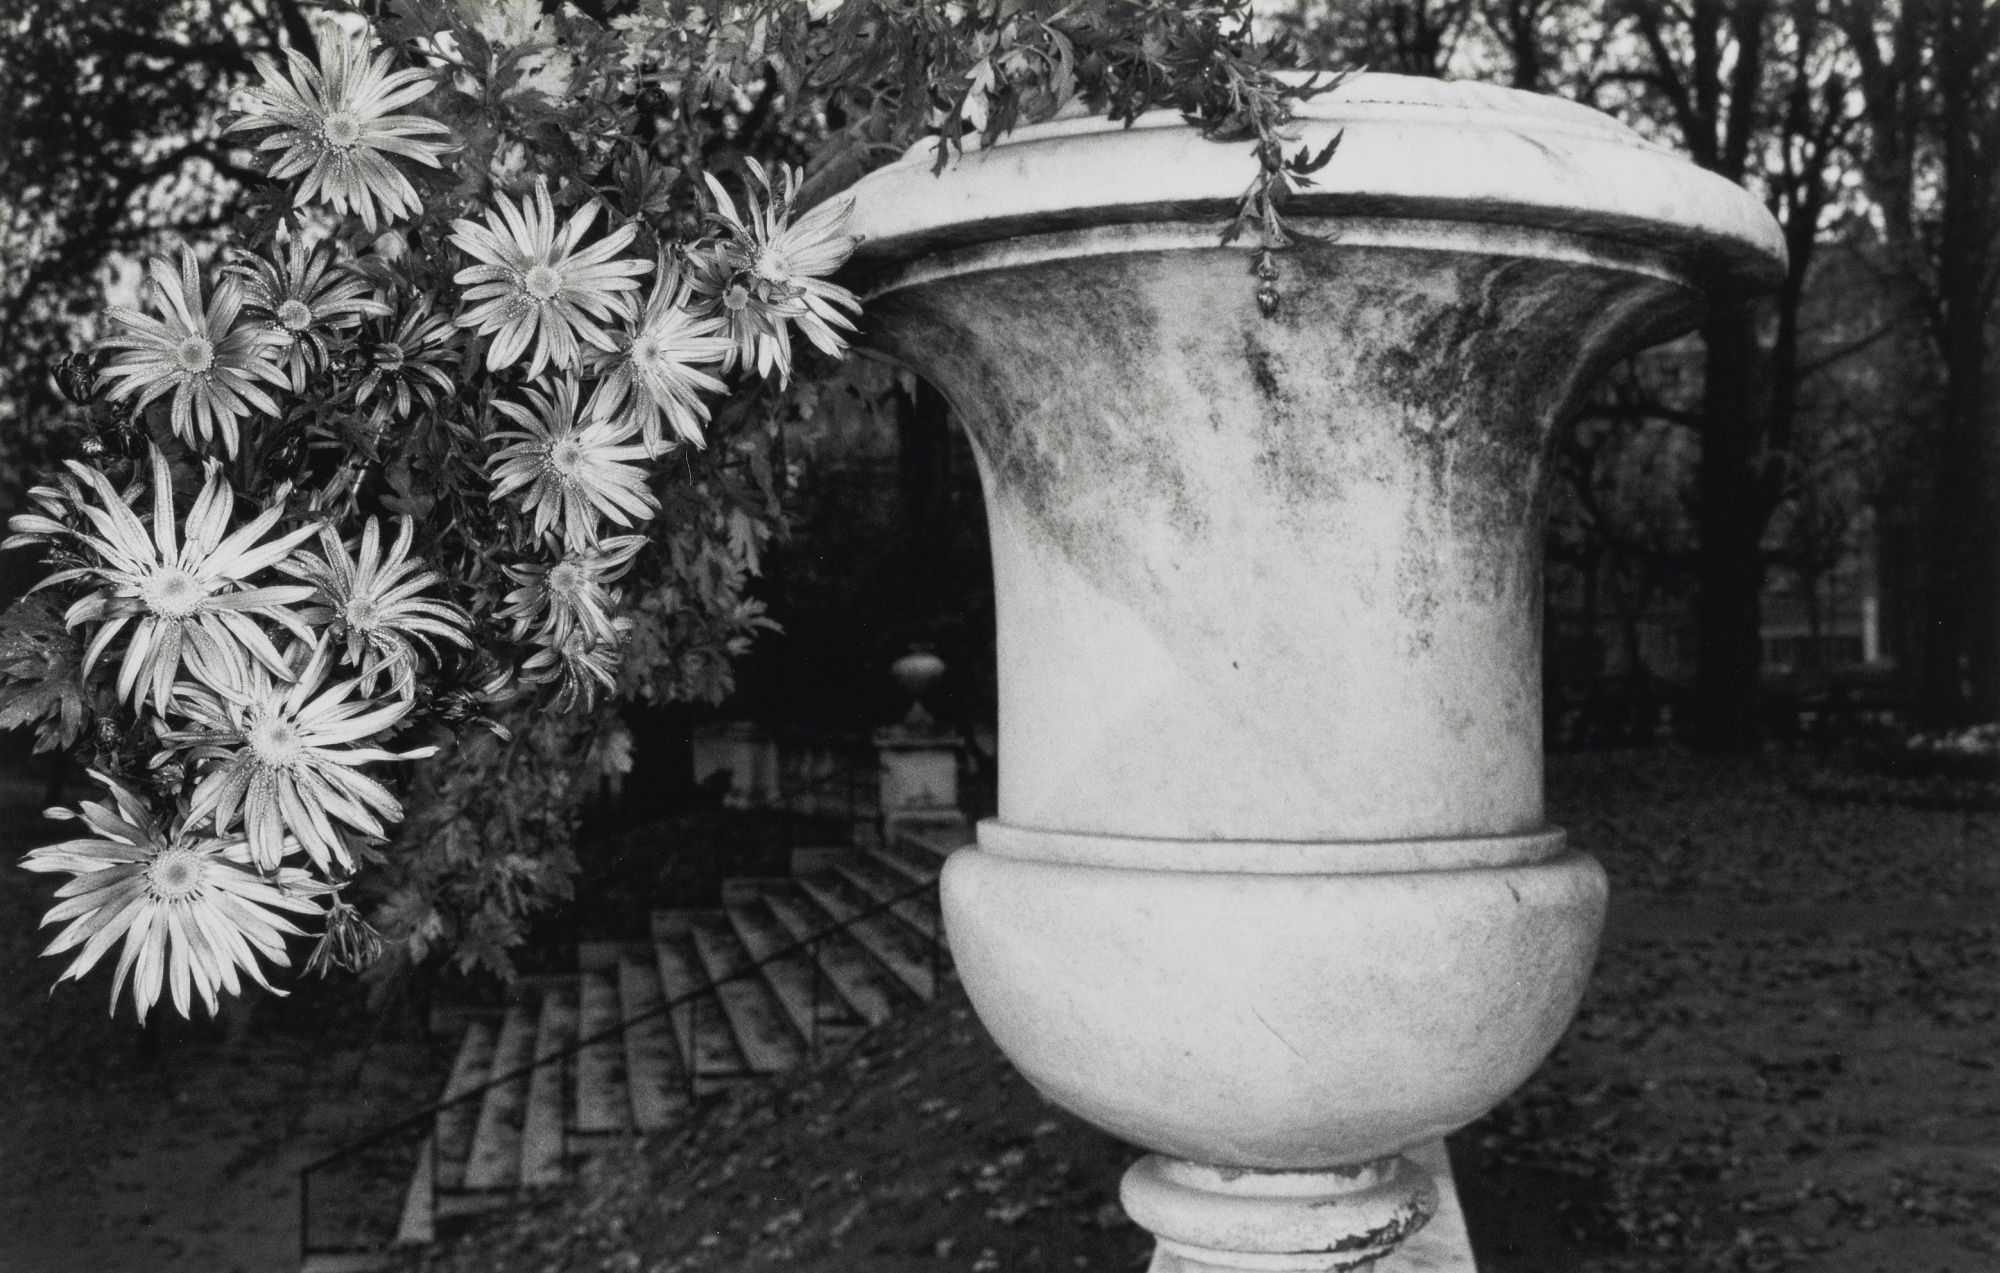 Lee Friedlander-Photographs Of Flowers (Florida/New York: Graphicstudio/Haywire Press, 1975)-1974